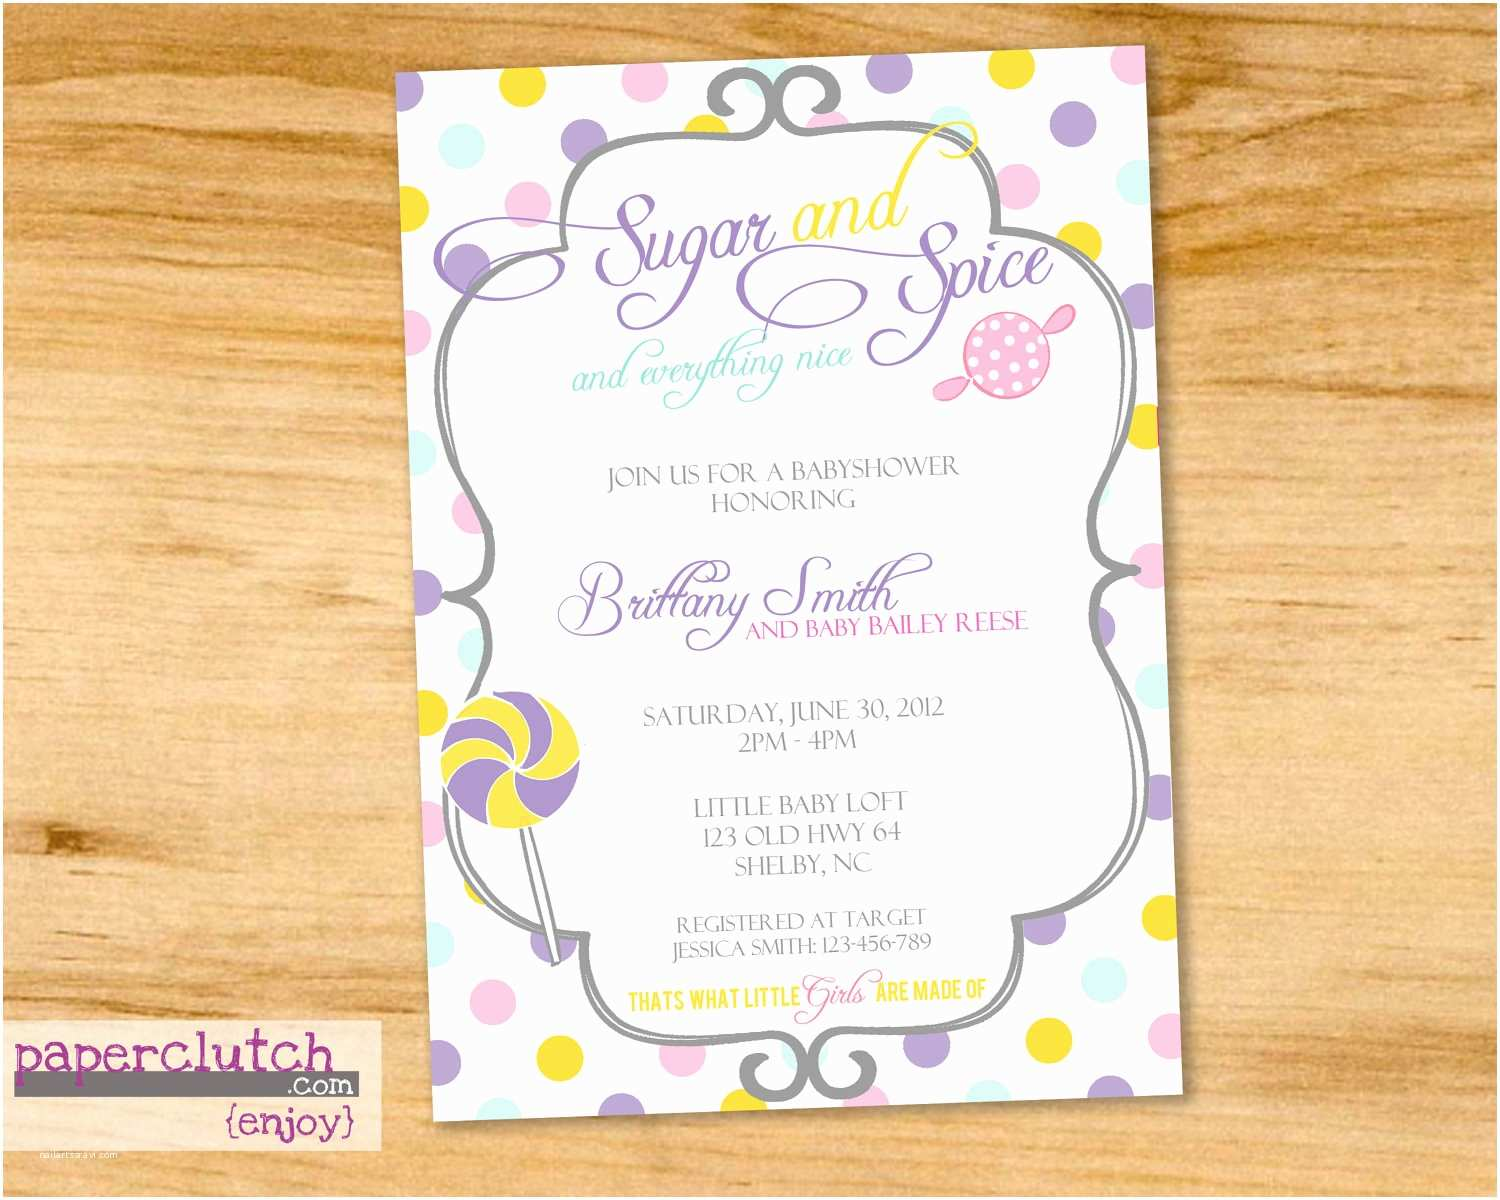 Sugar and Spice Baby Shower Invitations Chandeliers & Pendant Lights